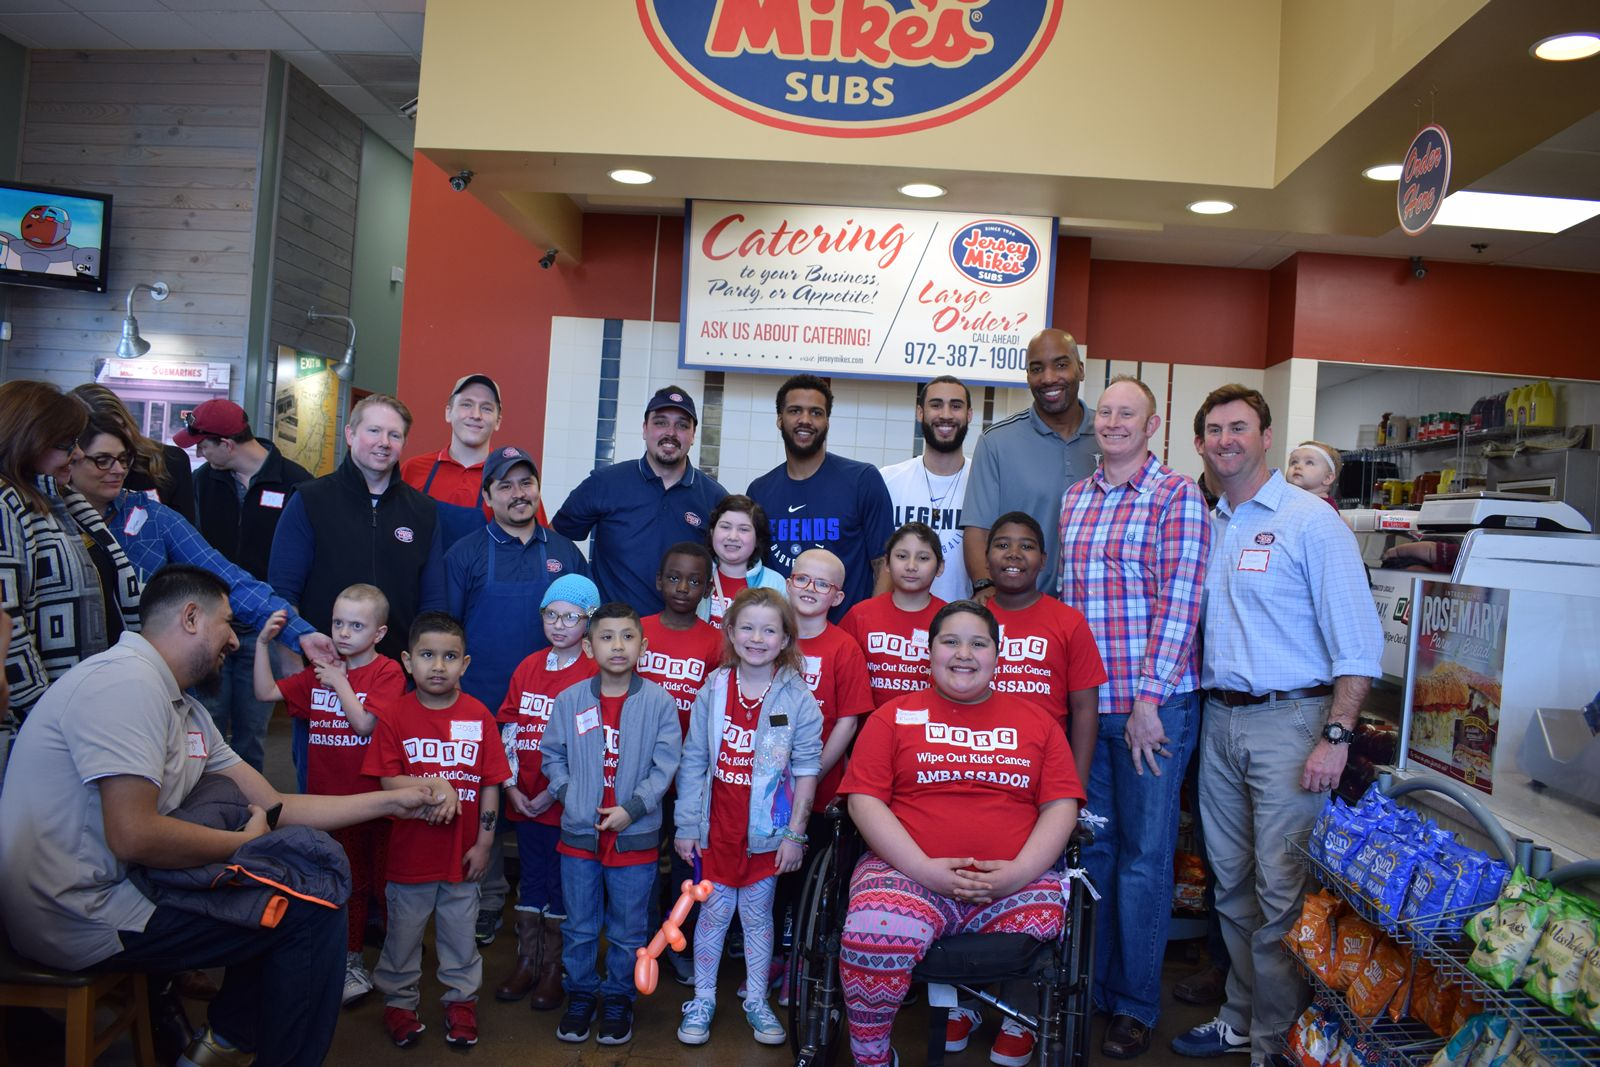 On Wednesday, March 28: Jersey Mike's Donates 100 Percent of Sales to Local Charities